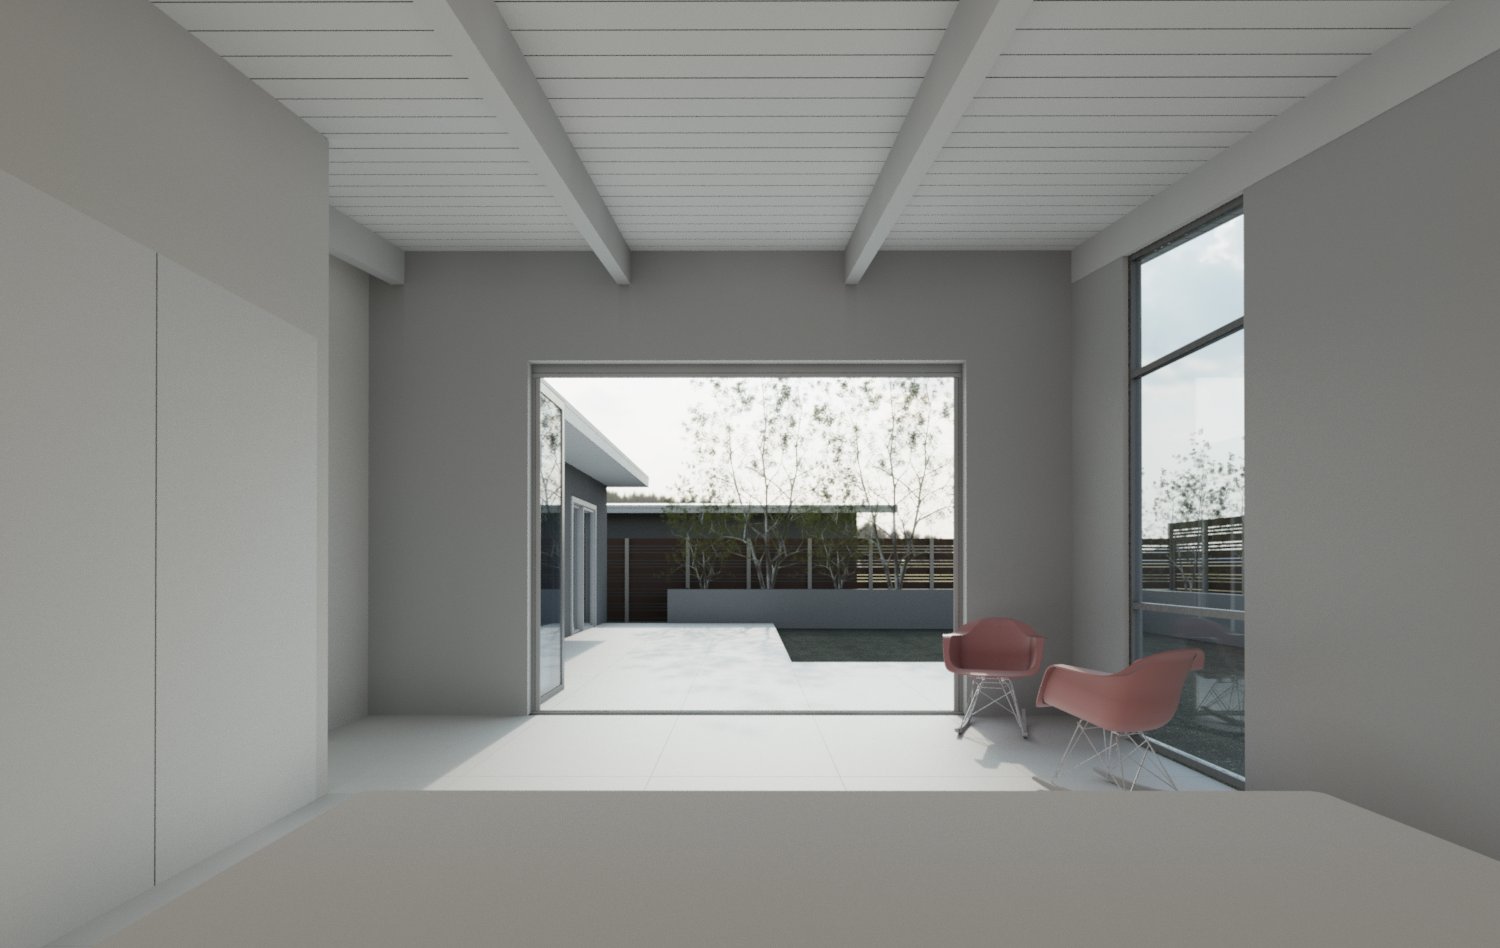 KP-04 _3D_View_-_Master_Bedroom_from_inside_to_outside-_doors_open.png